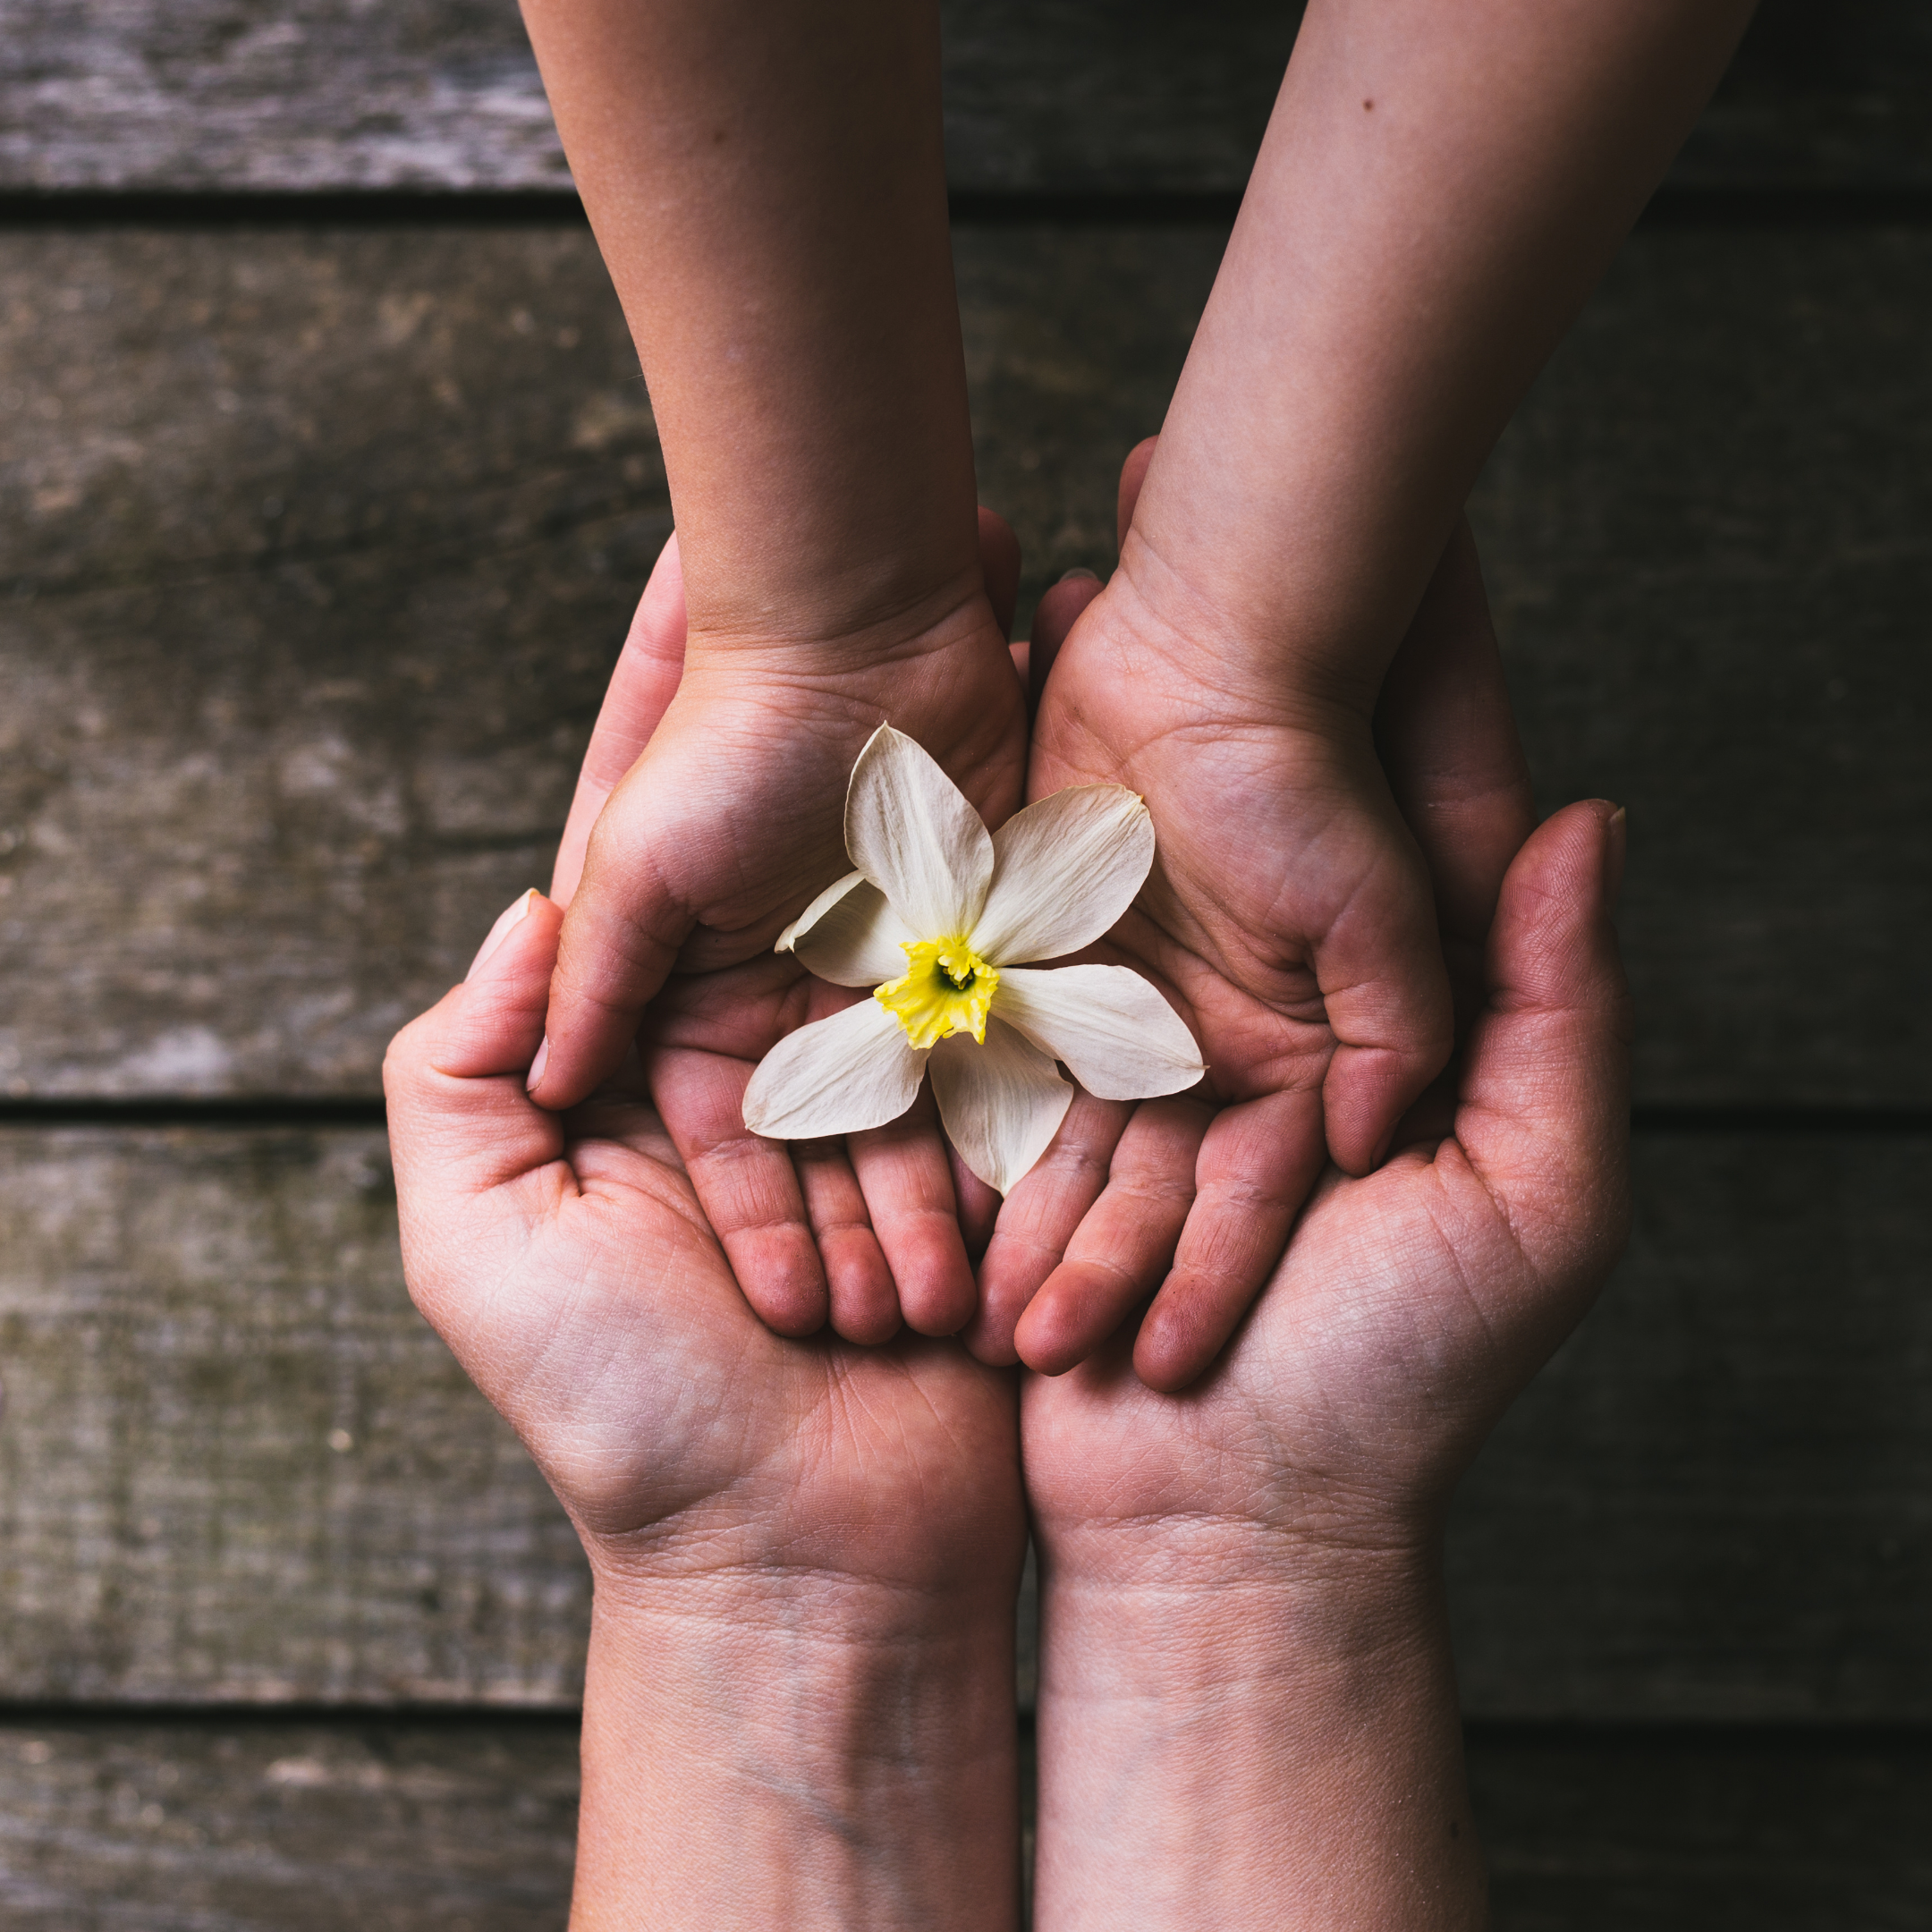 parent's hands supporting child's hands holding flower